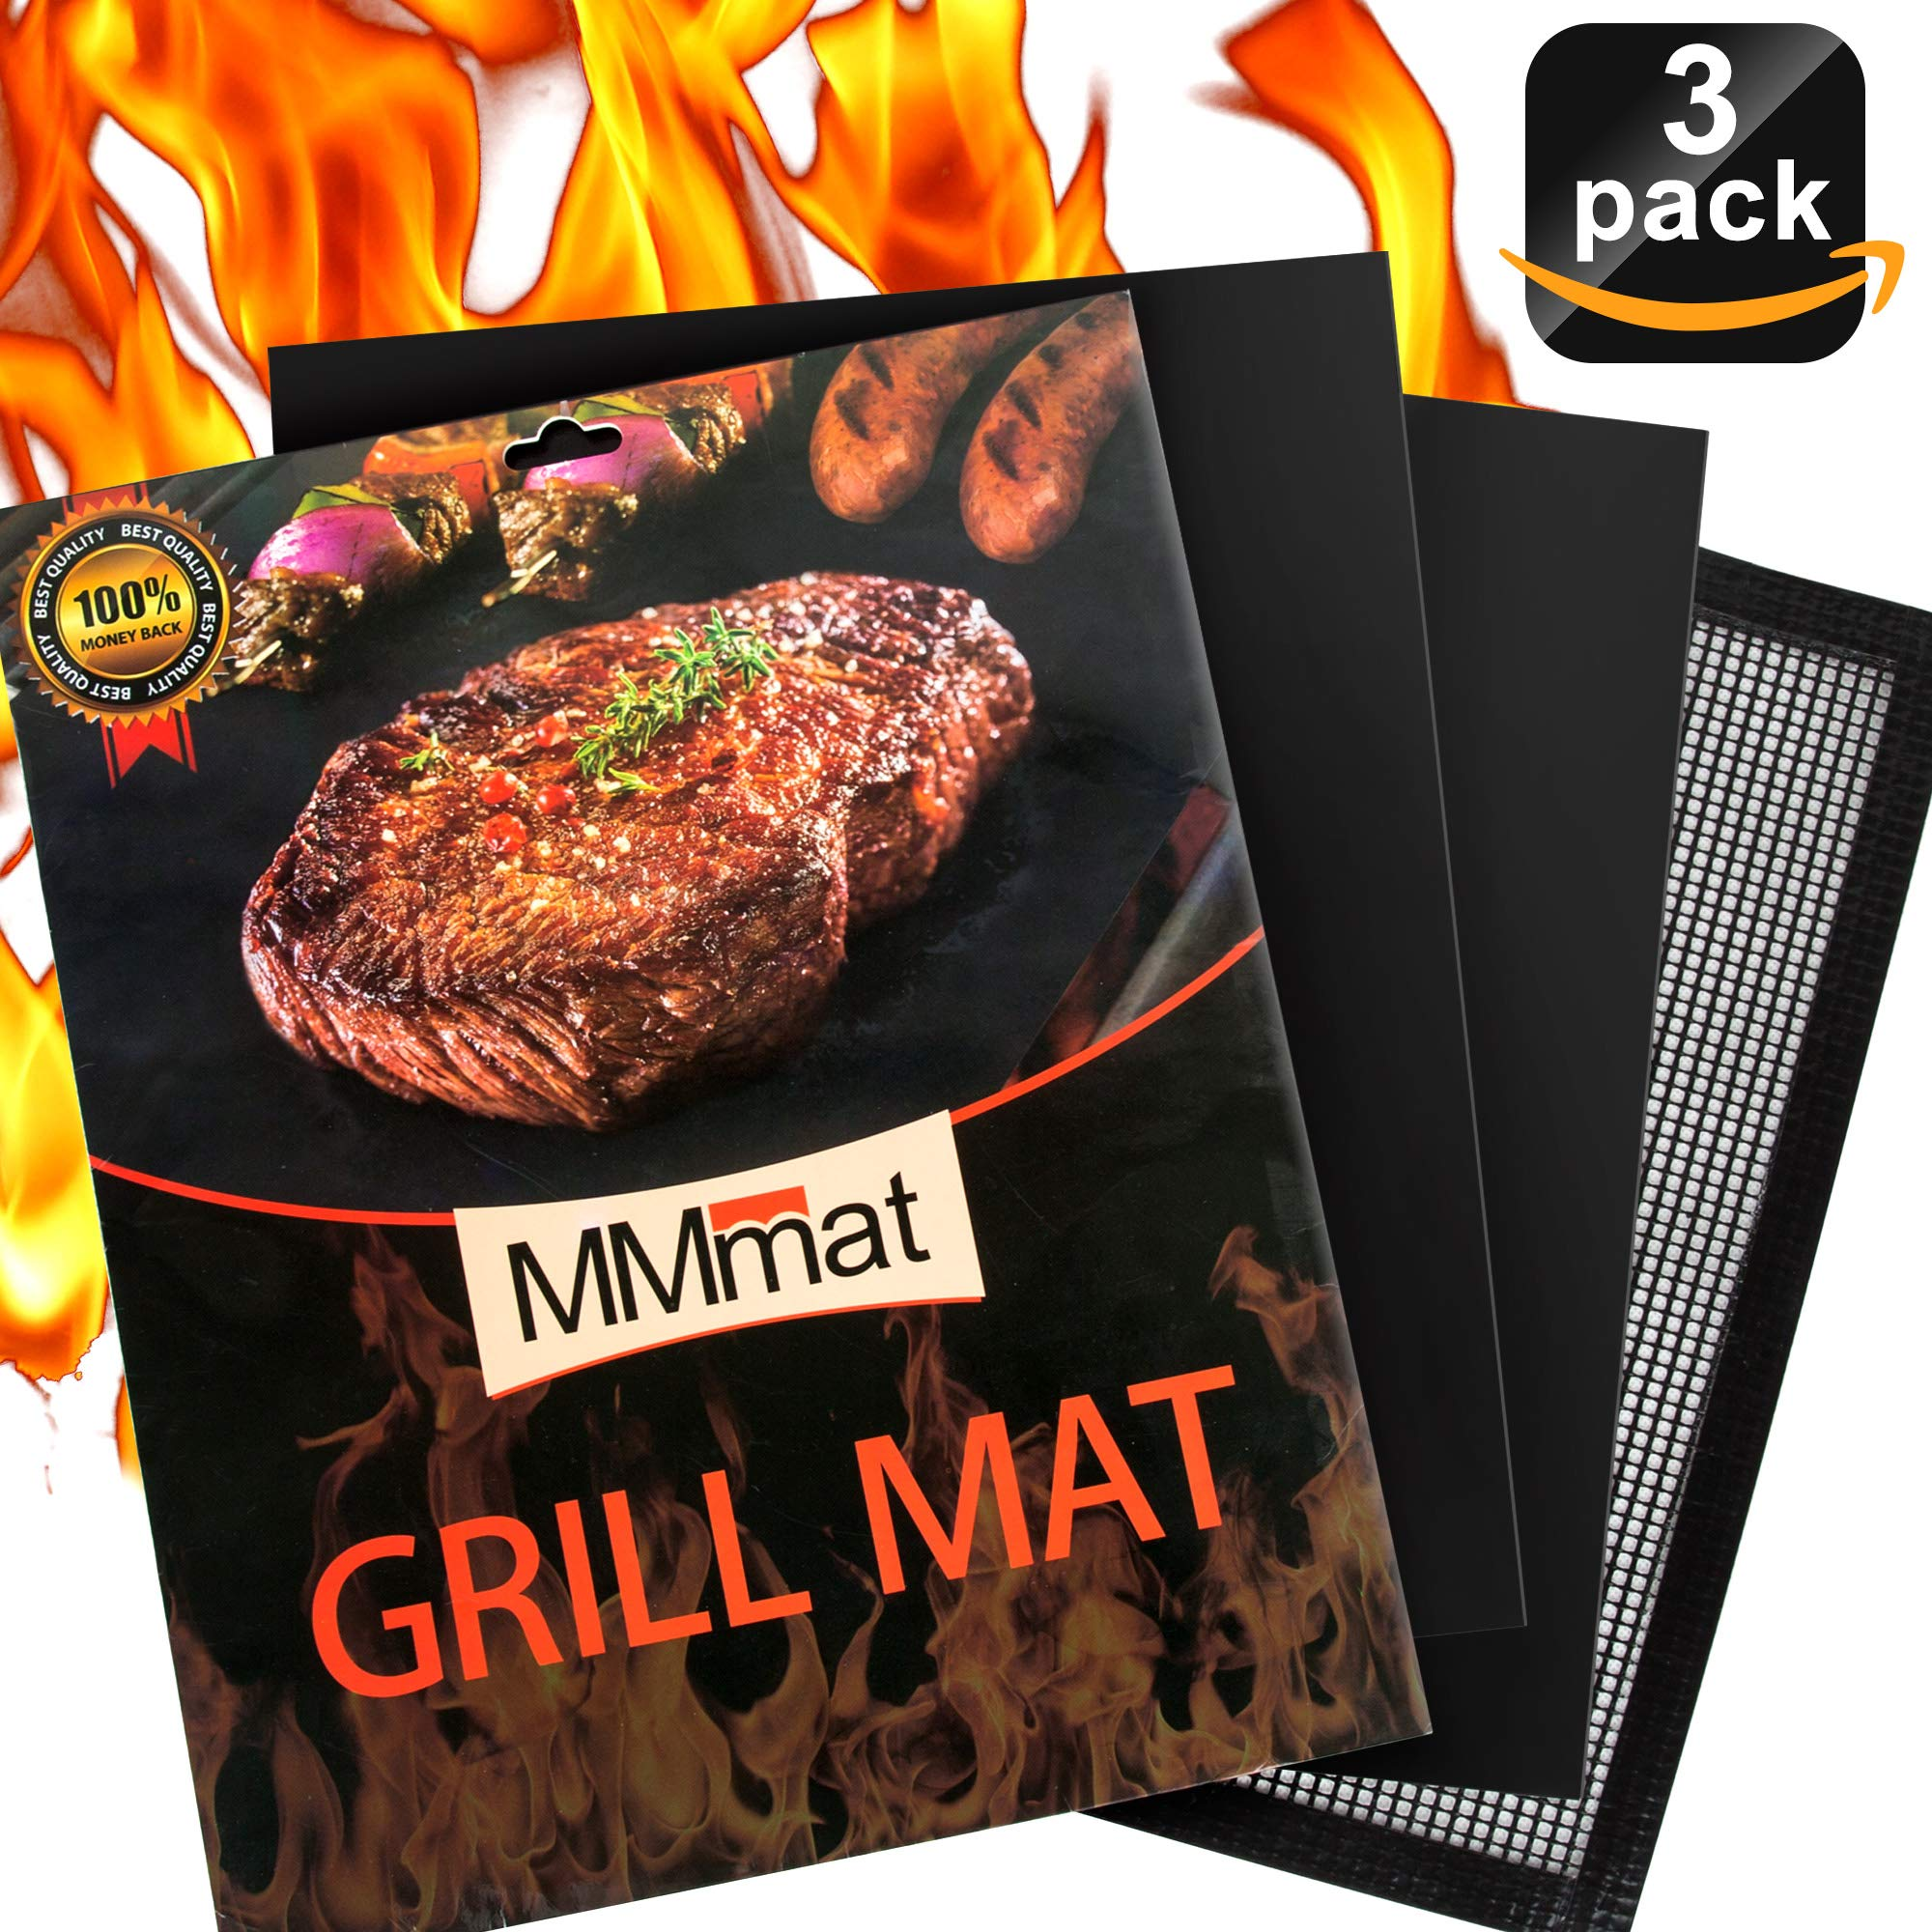 MMMAT Grill Mat - Set of 3 Heavy Duty BBQ Grill Mats - Non Stick, Reusable, Easy to Clean - Lifetime Manufacturers Warranty by MMMAT